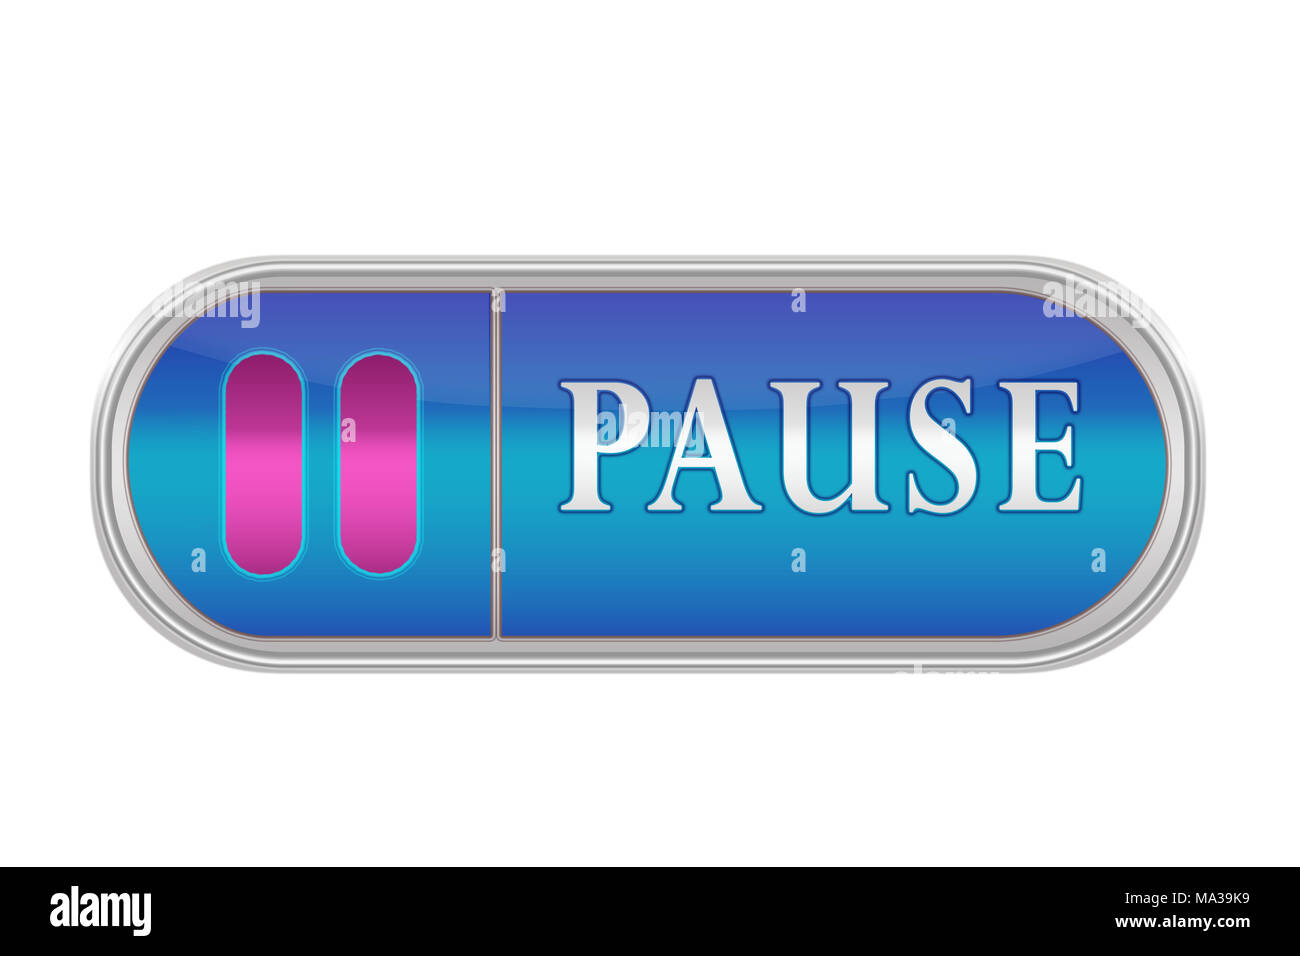 Oblong volume button of blue color with the icon and the inscription 'PAUSE', white background - Stock Image